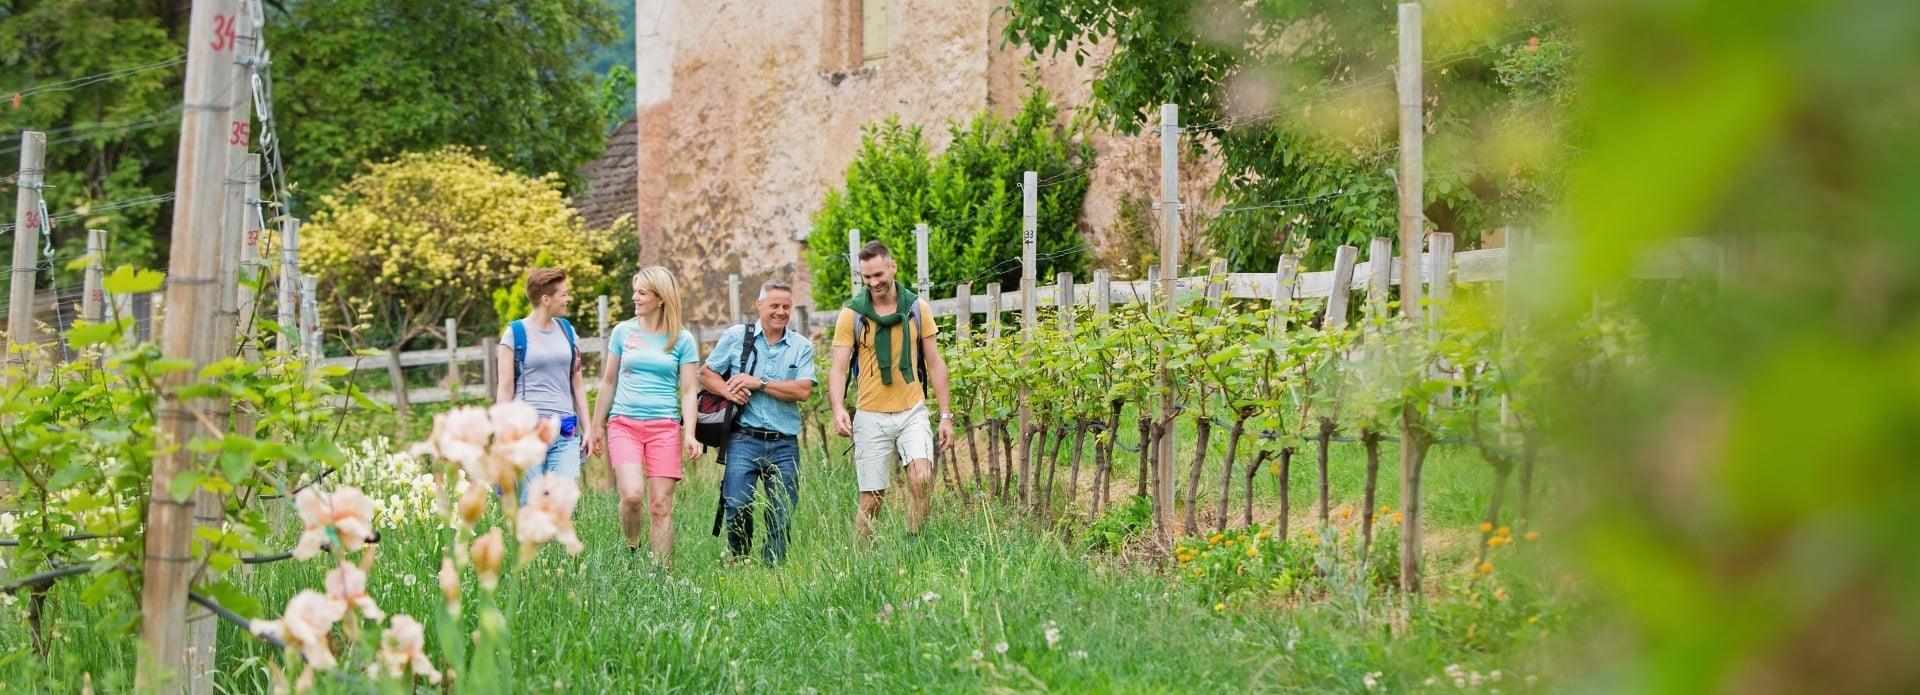 Active holidays in South Tyrol